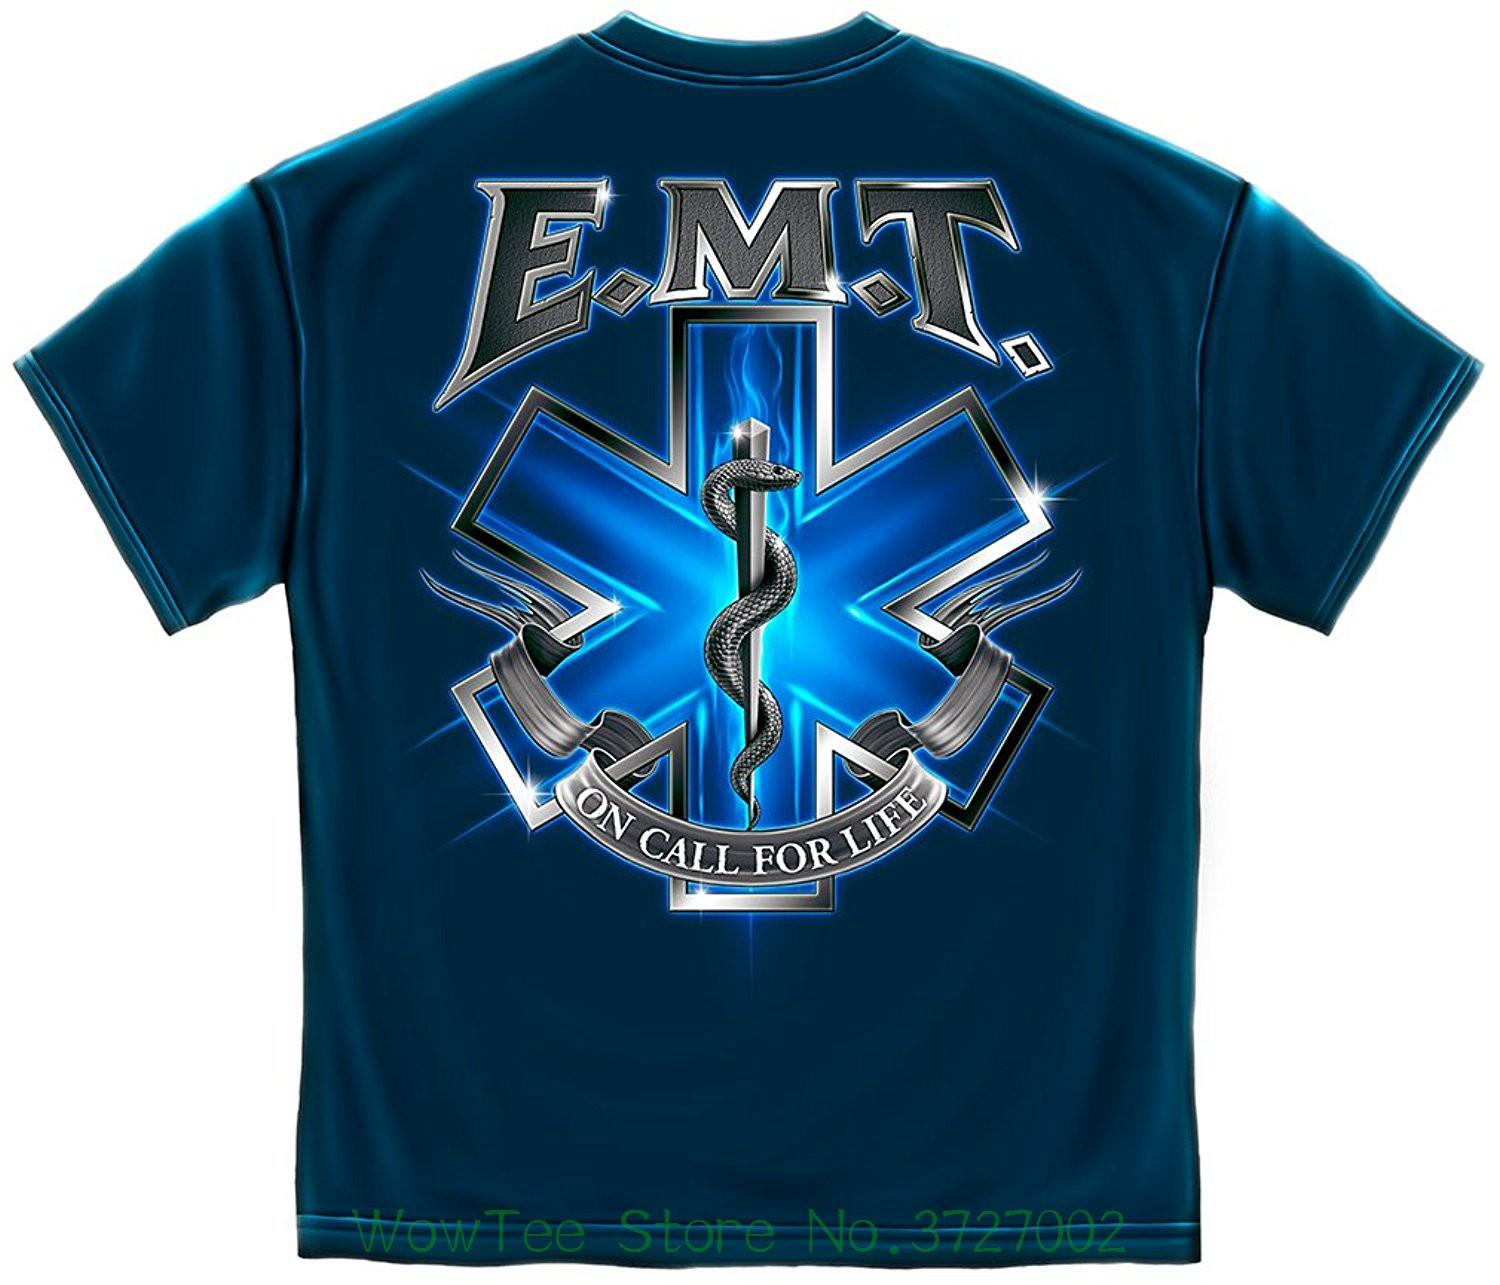 fac504455 100% Cotton On Call For Life Emt T-shirt Men's High Quality Custom Printed  Tops Hipster Tees